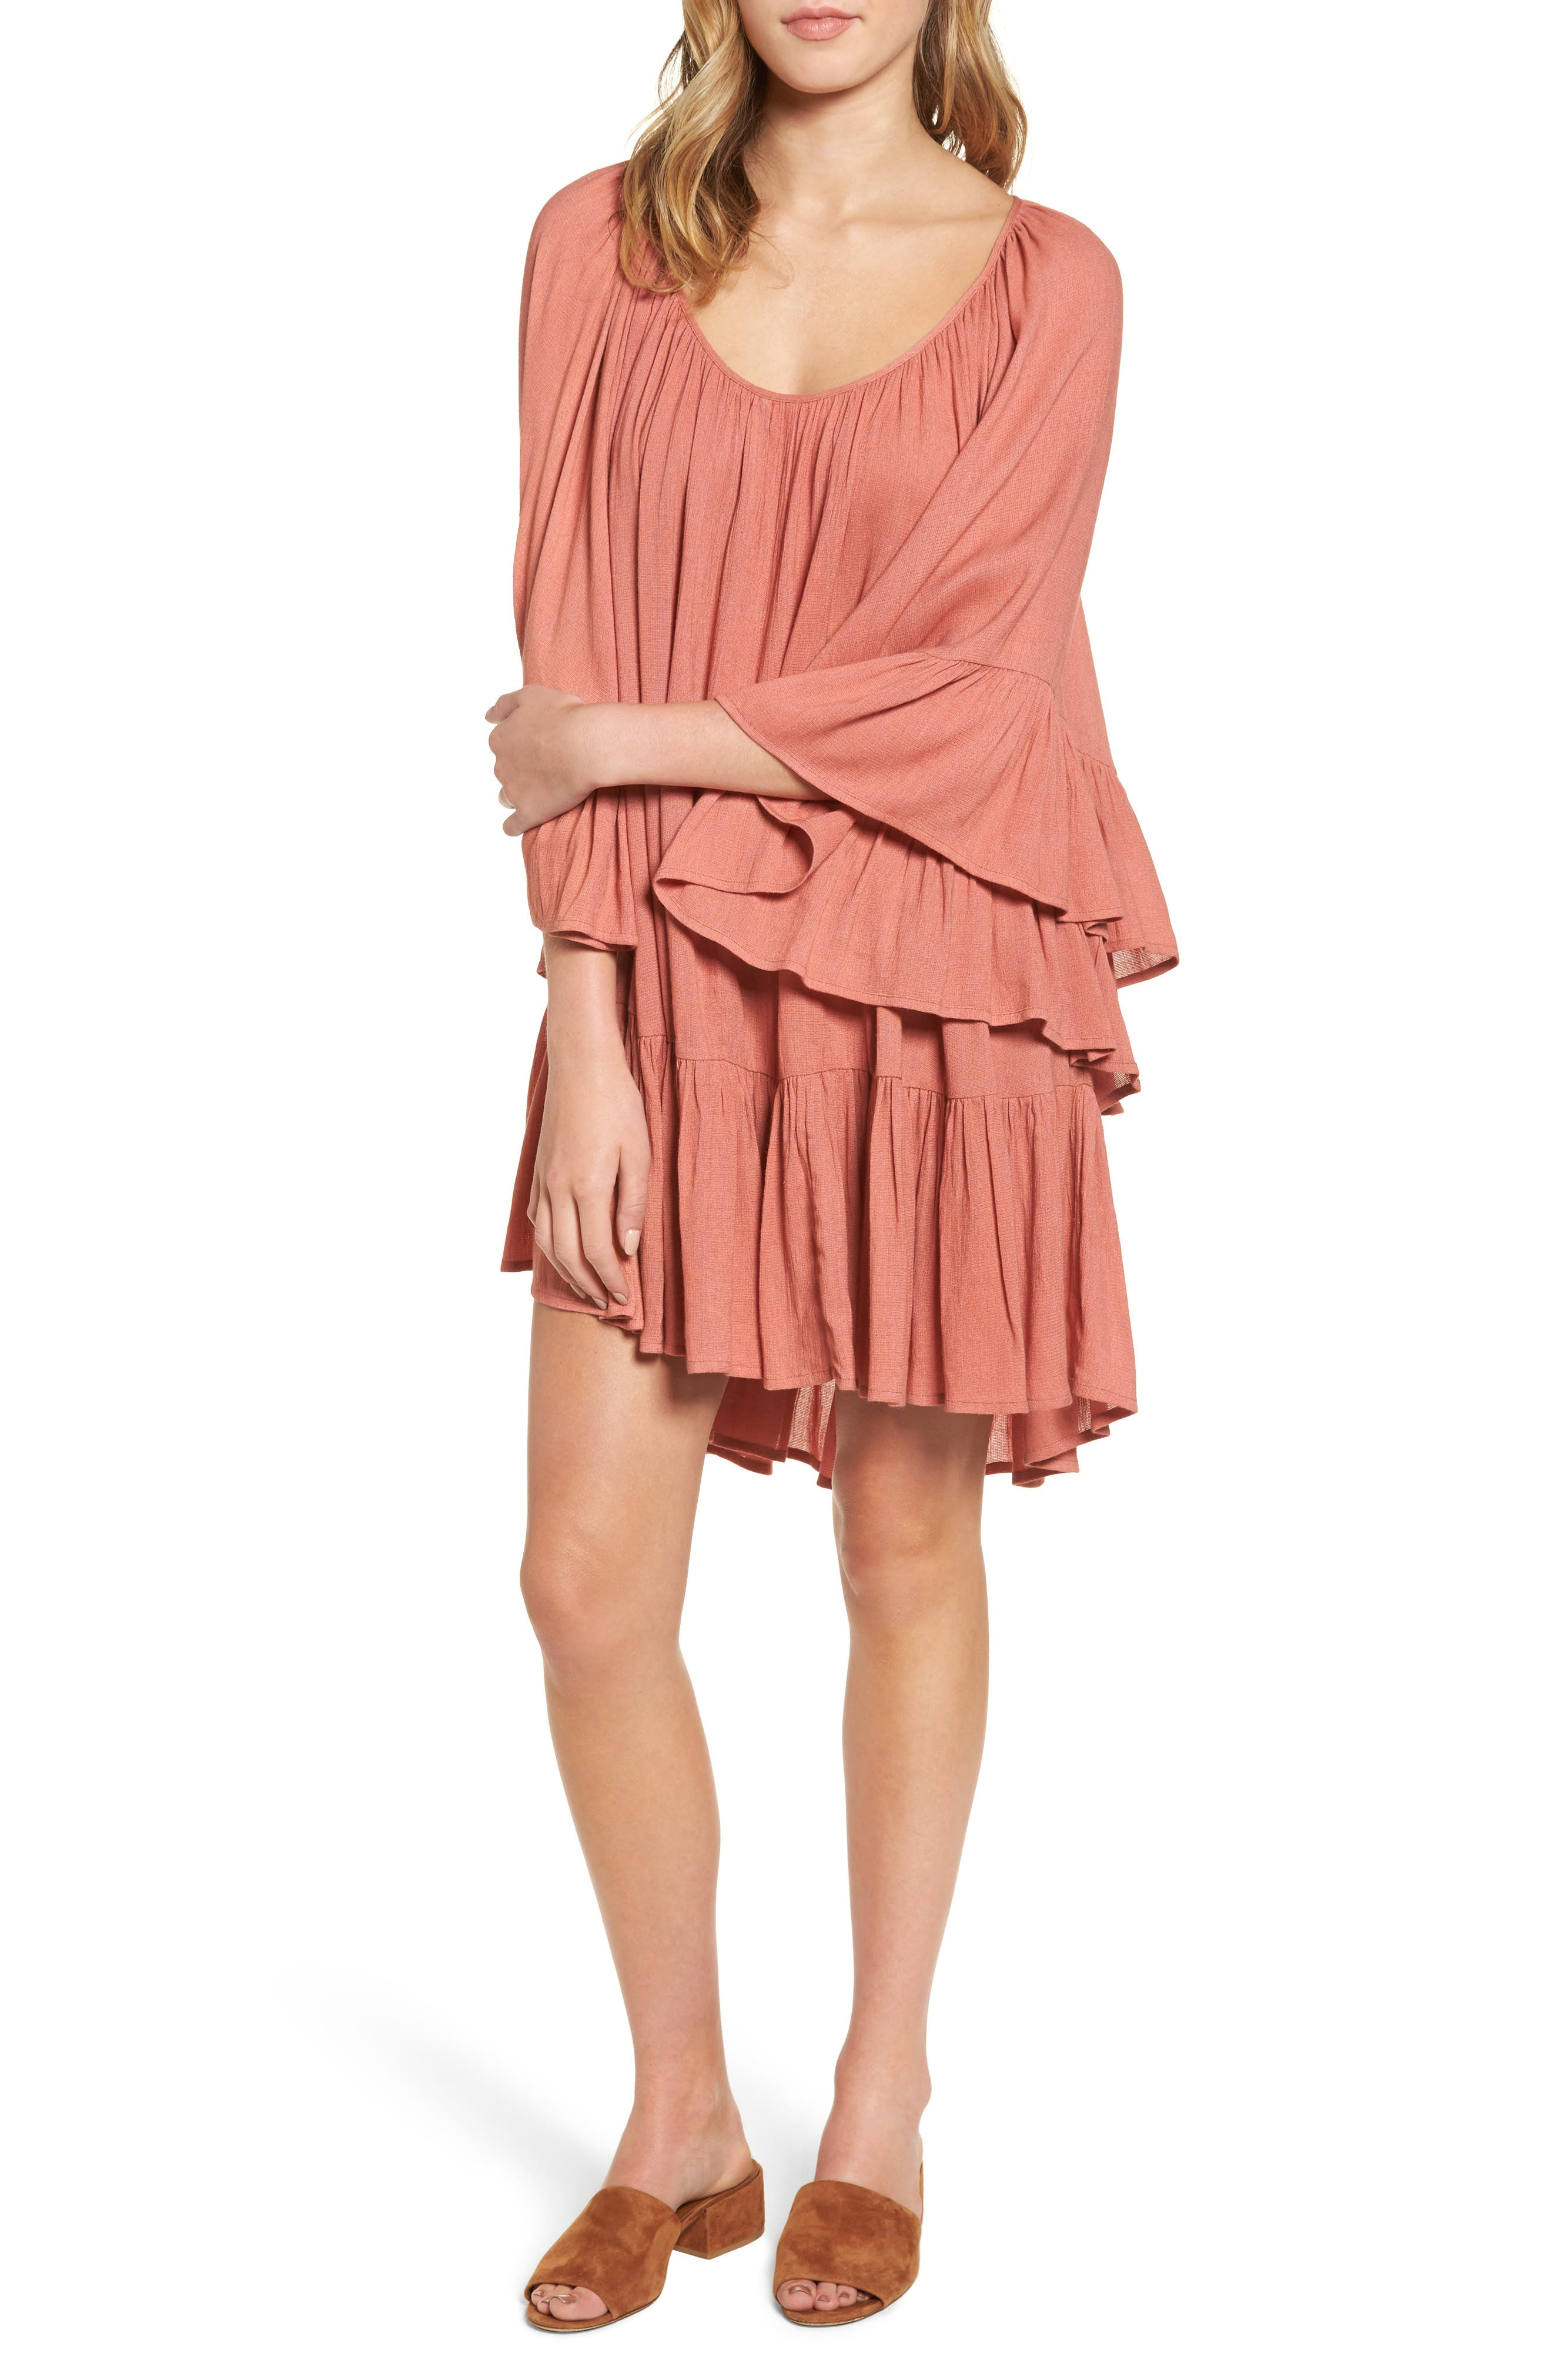 Gimme More Dress,                             Main thumbnail 1, color,                             Dusty Rose